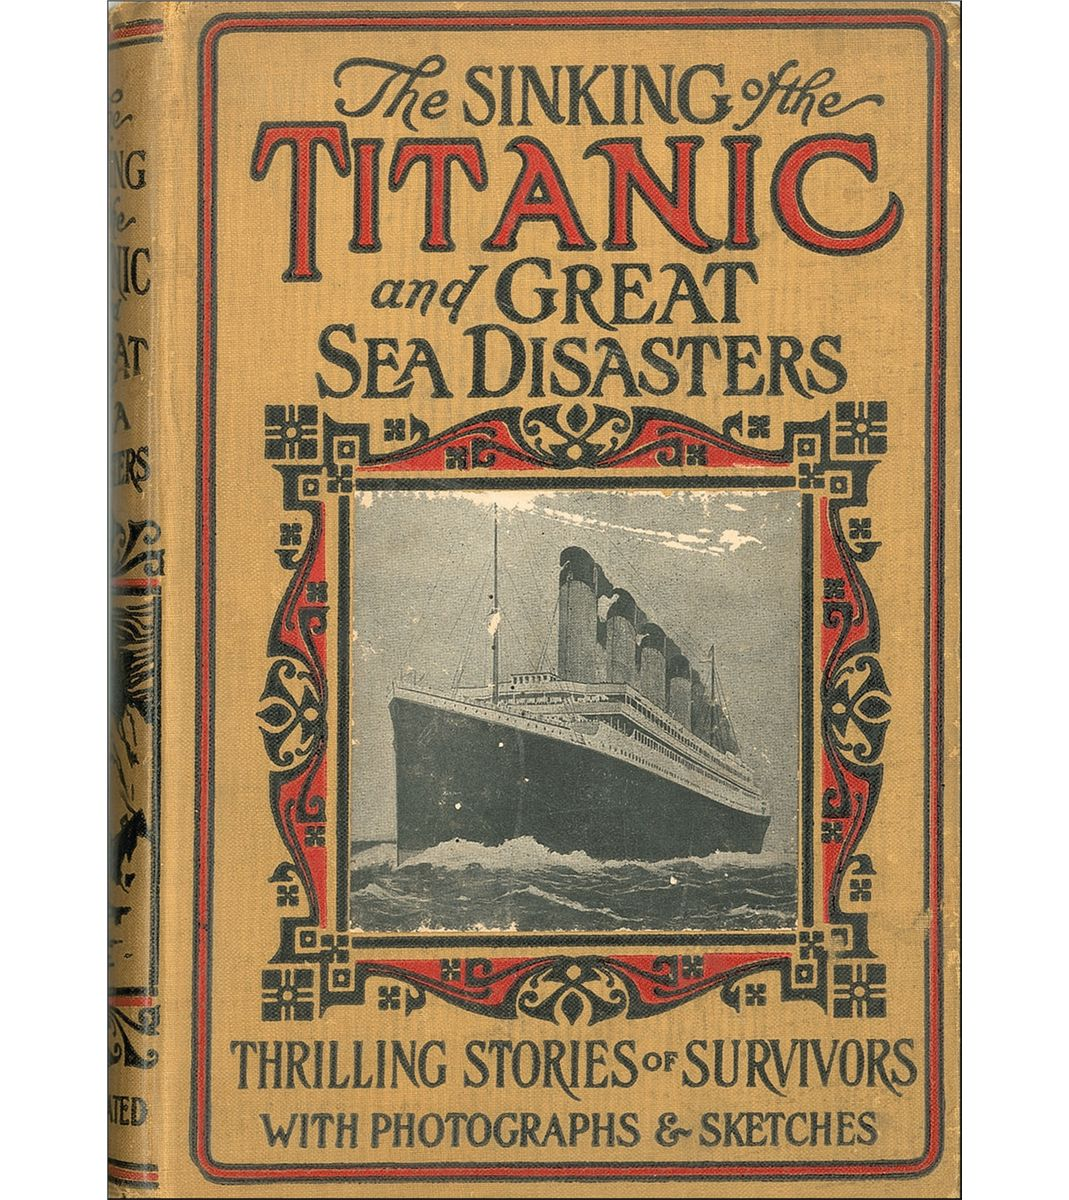 sinking of the great titanic The sinking of the titanic and great sea disasters (illustrated) (titanic landmark series book 5) - kindle edition by logan marshall download it once and read it on your kindle device, pc, phones or tablets.